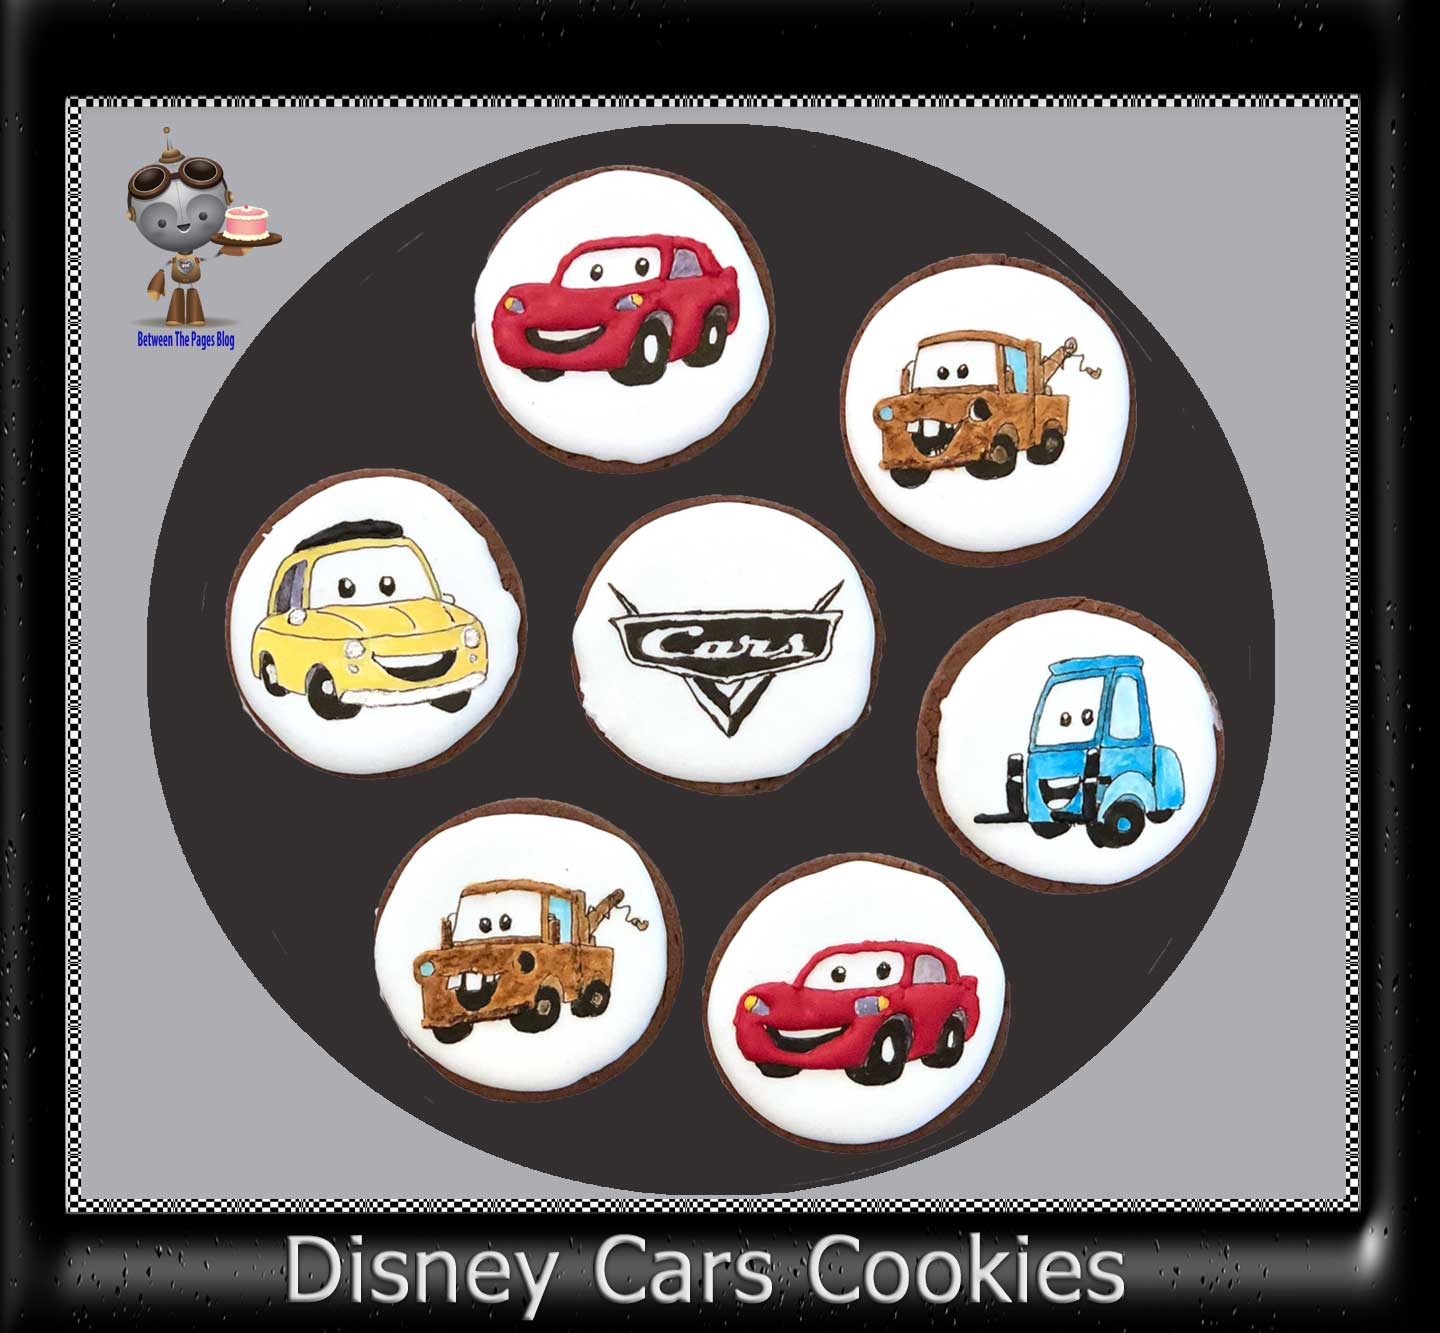 Disney Cars Cookies